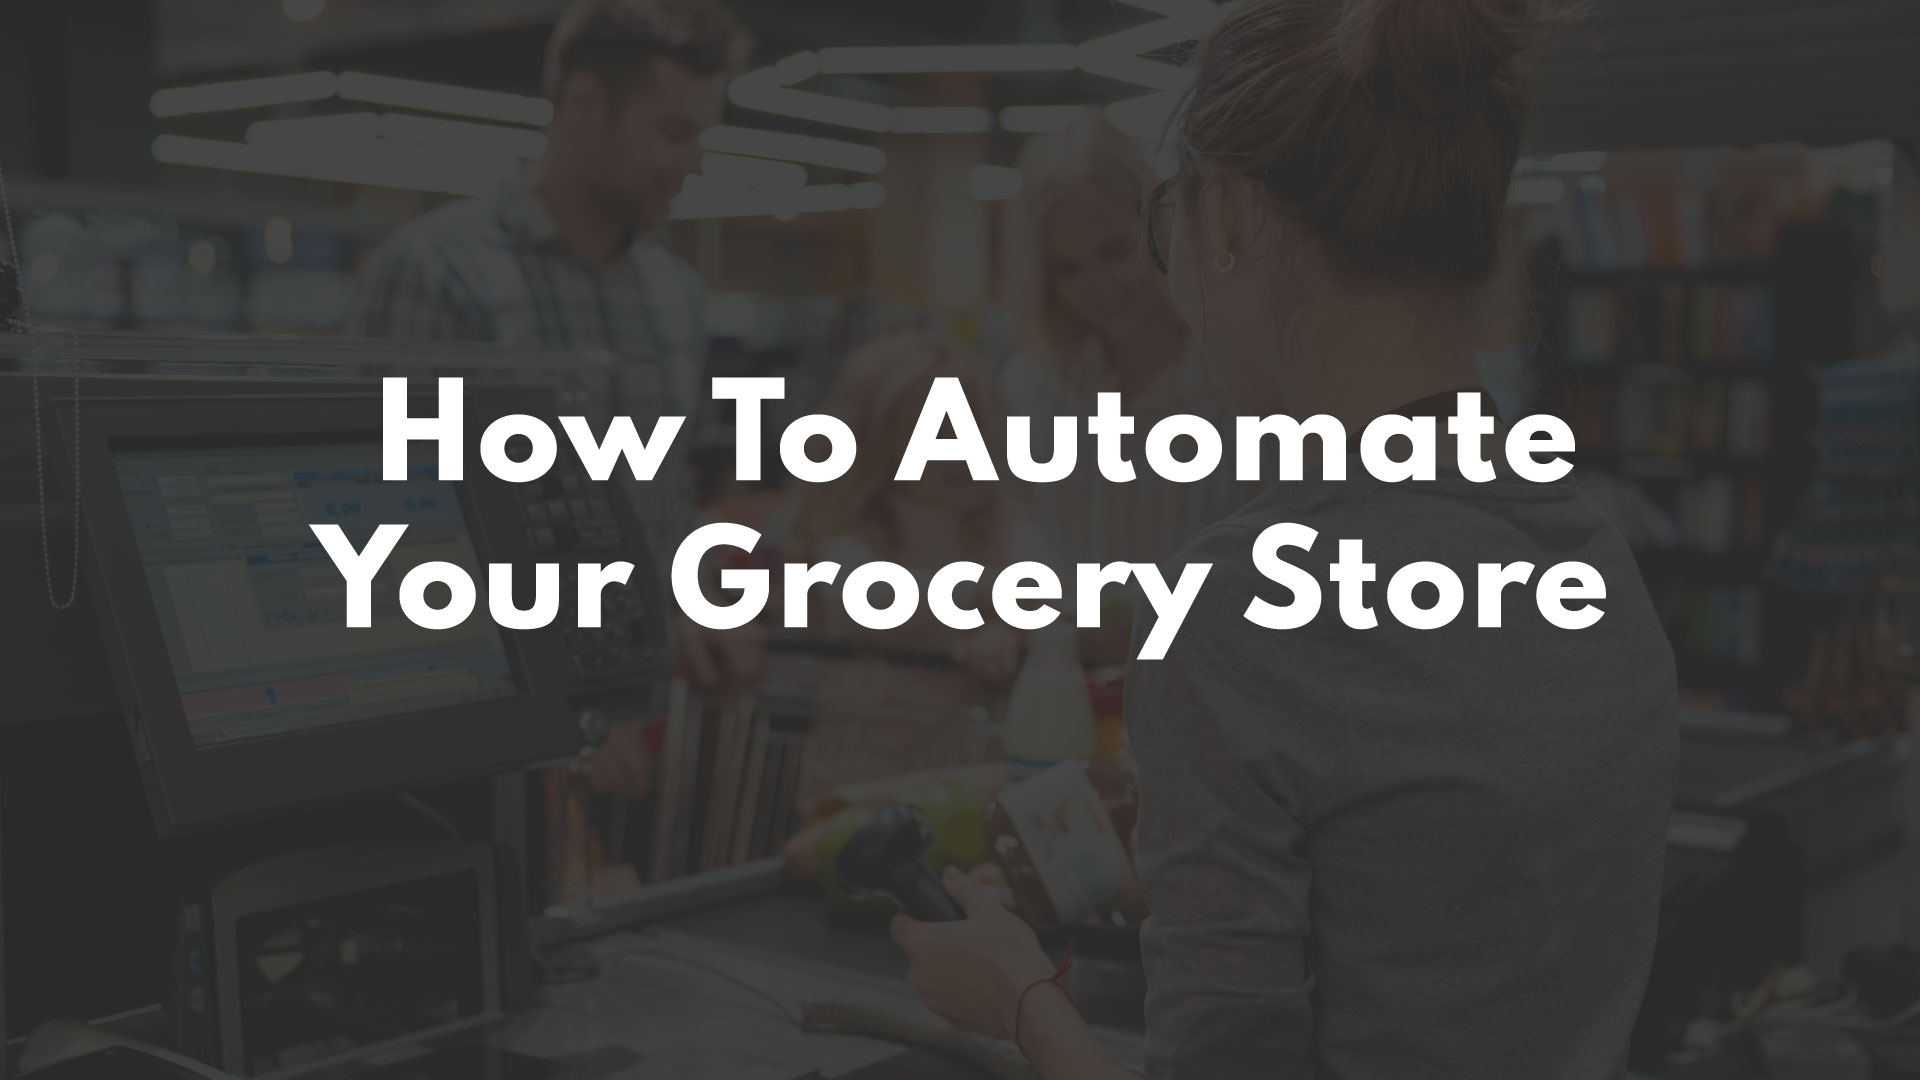 How Do You Automate a Grocery Store?